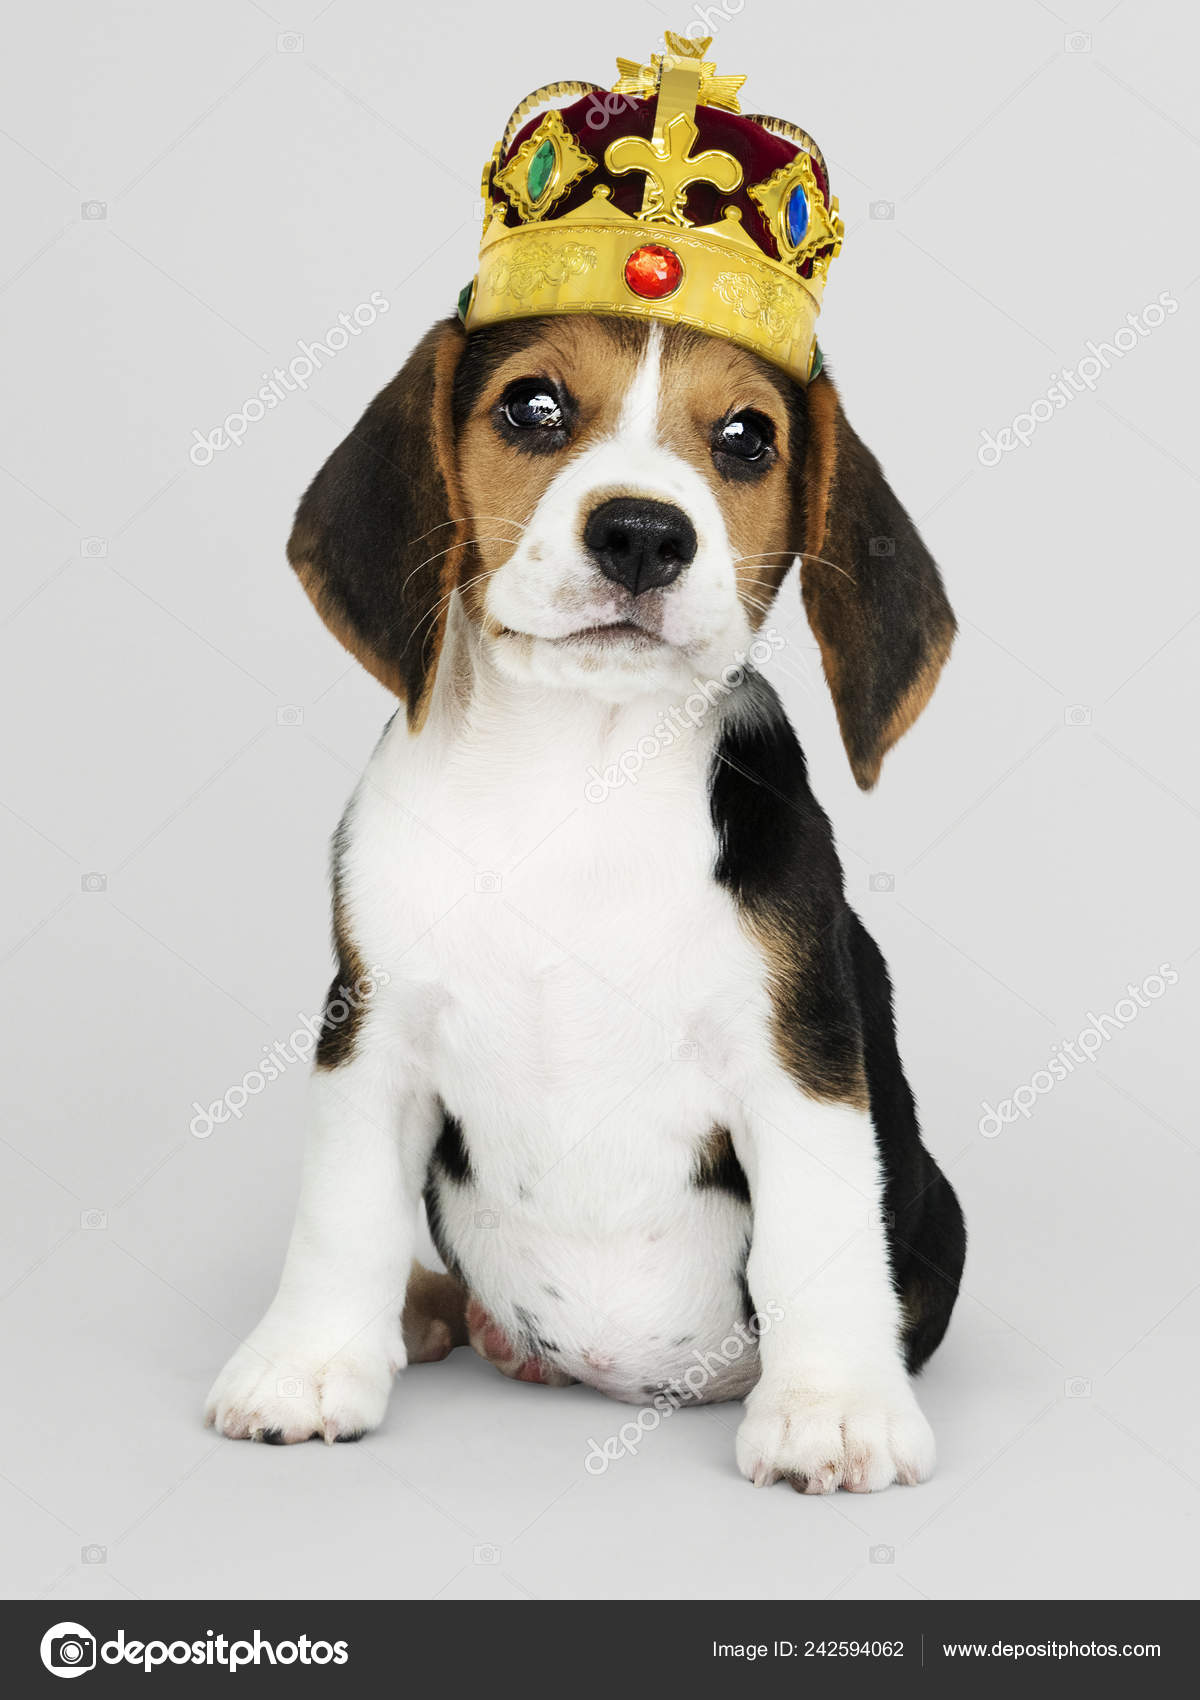 Cute Beagle Puppy Classic Gold Red Velvet Crown Stock Photo C Rawpixel 242594062